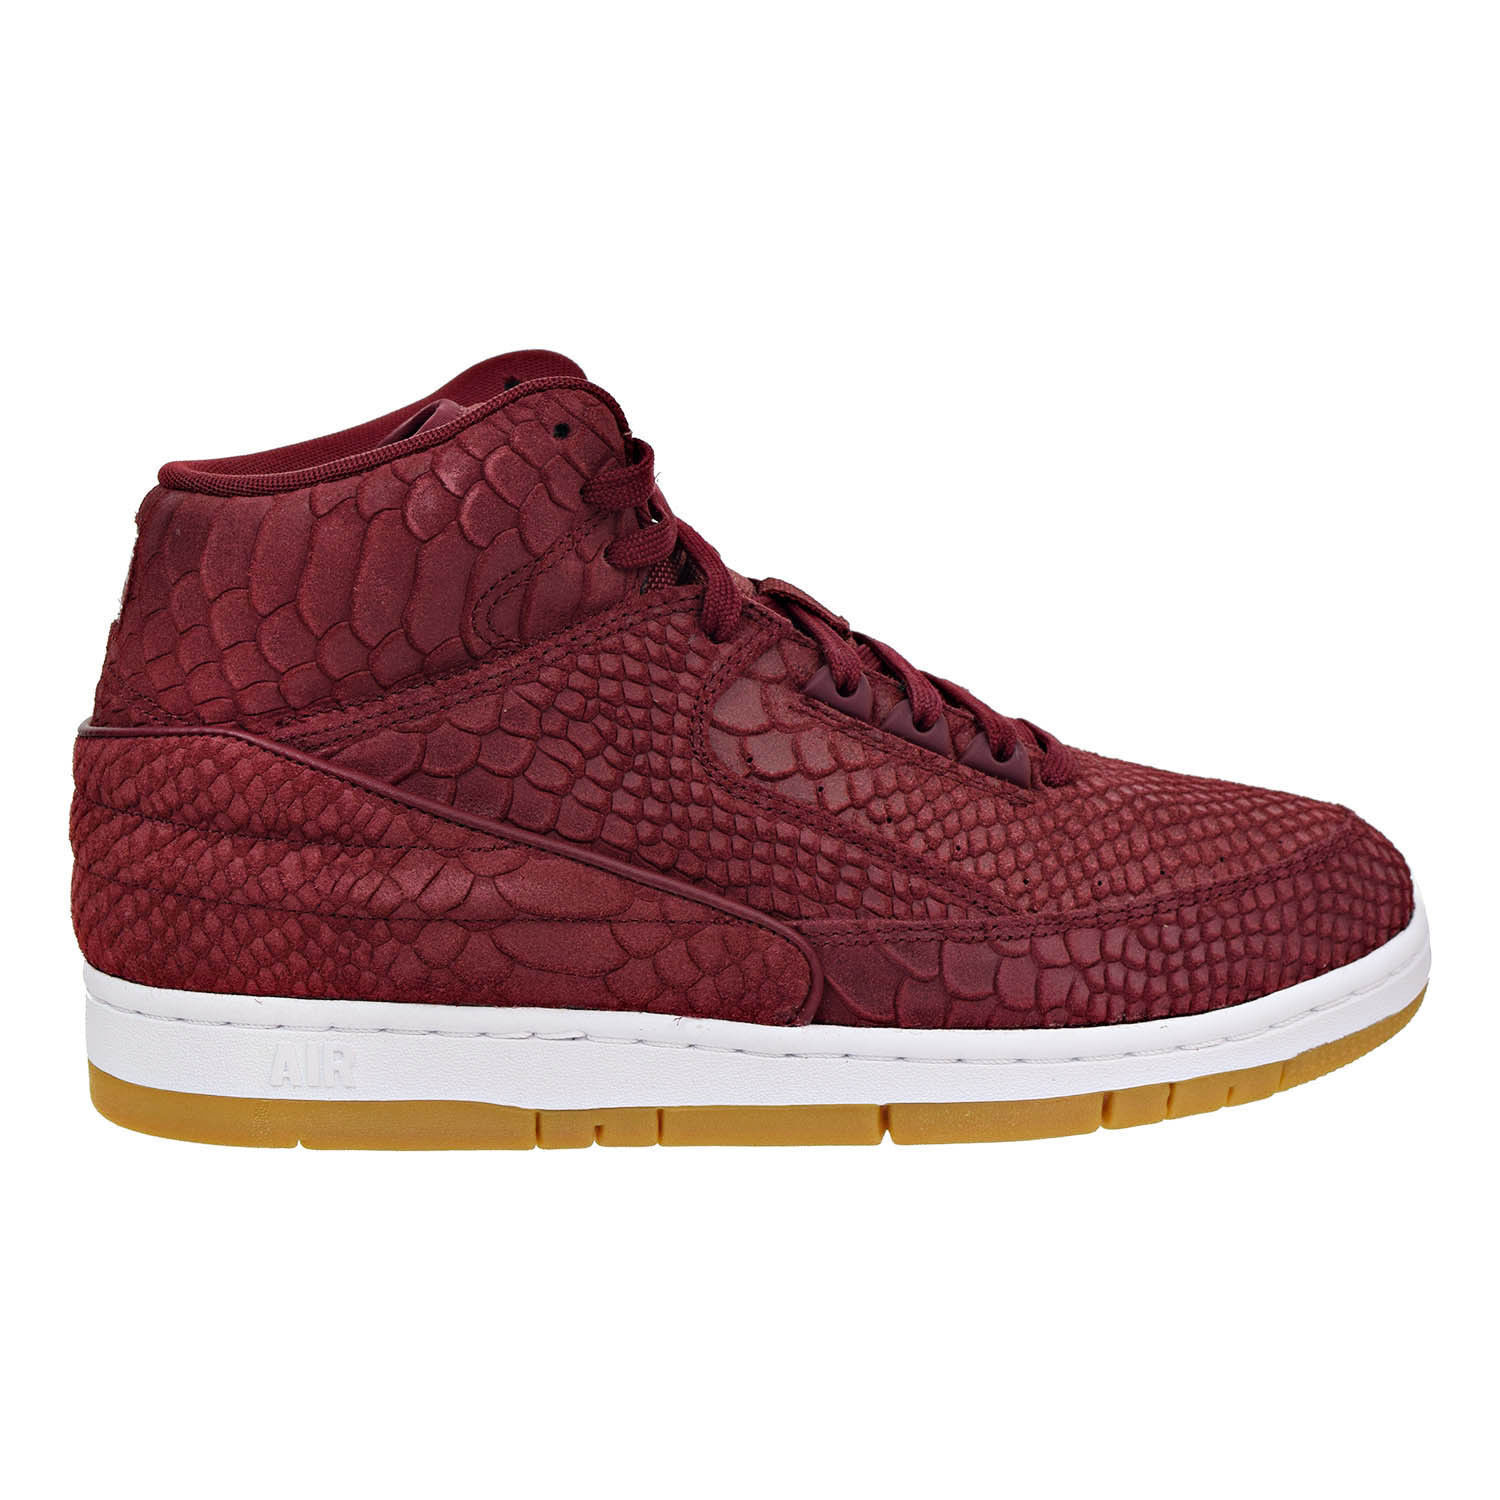 New Nike Air Python Premium Men's Athletic Shoes Team Red/White 705066 601